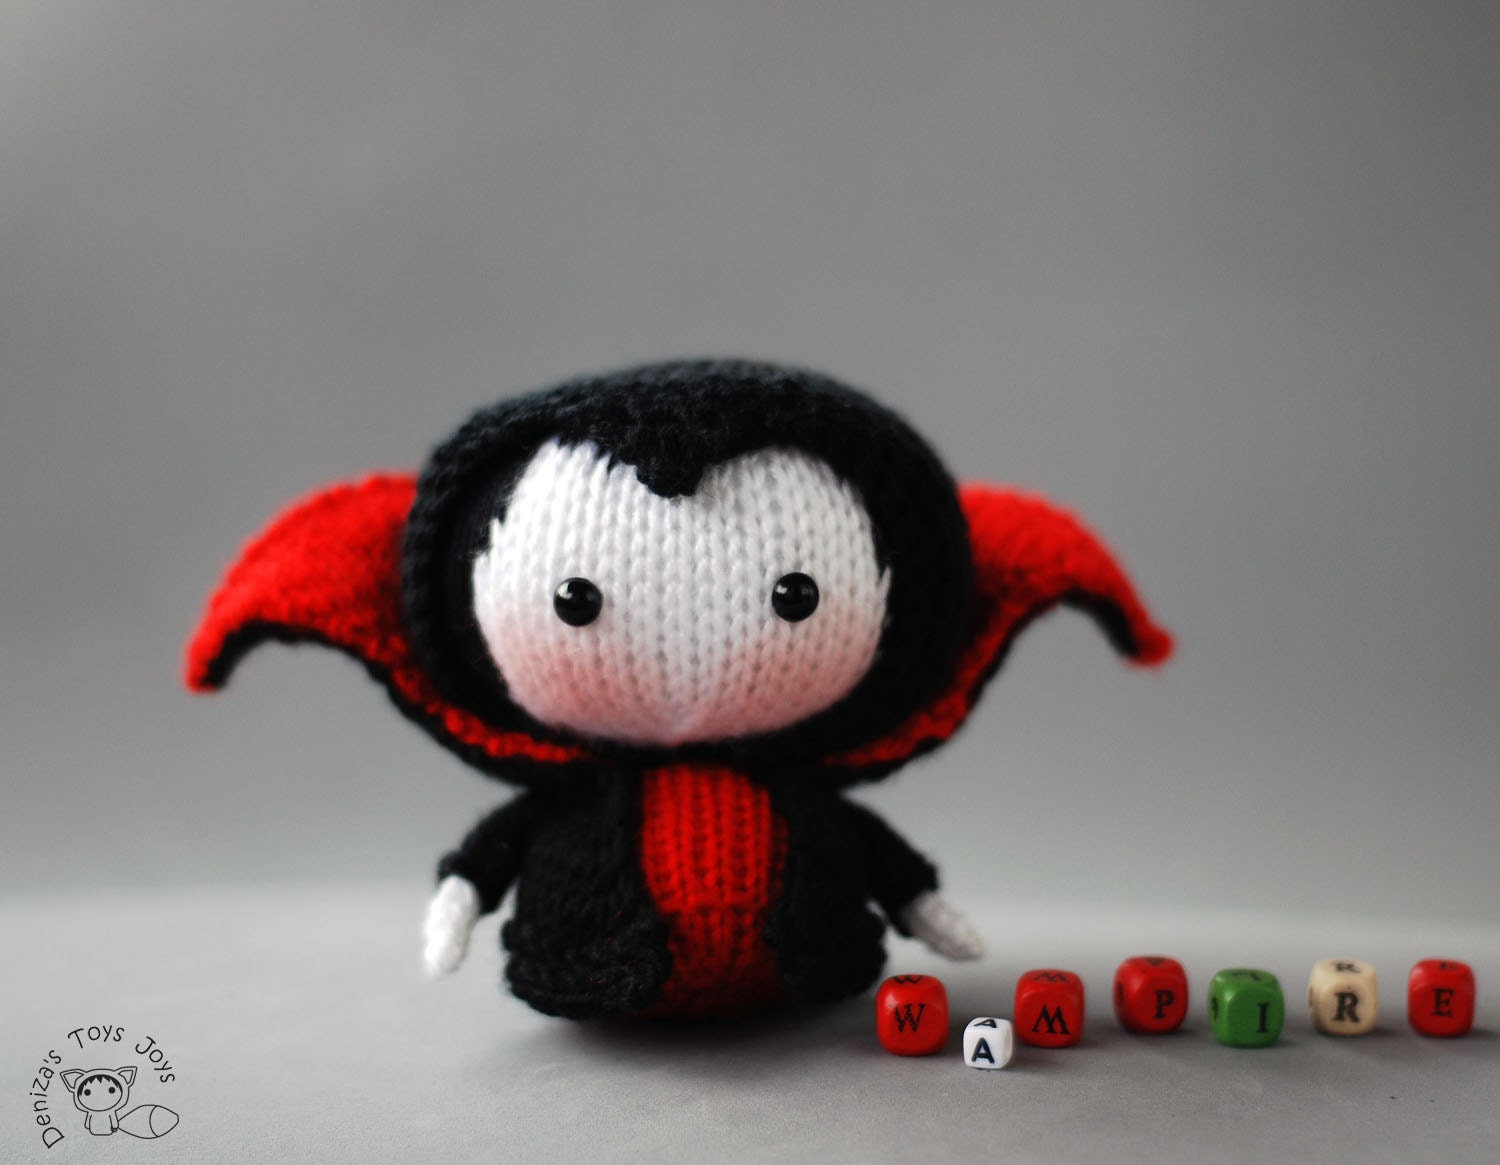 Knitting Toys In The Round : Vampire doll tanoshi series toy knitting pattern knitted in